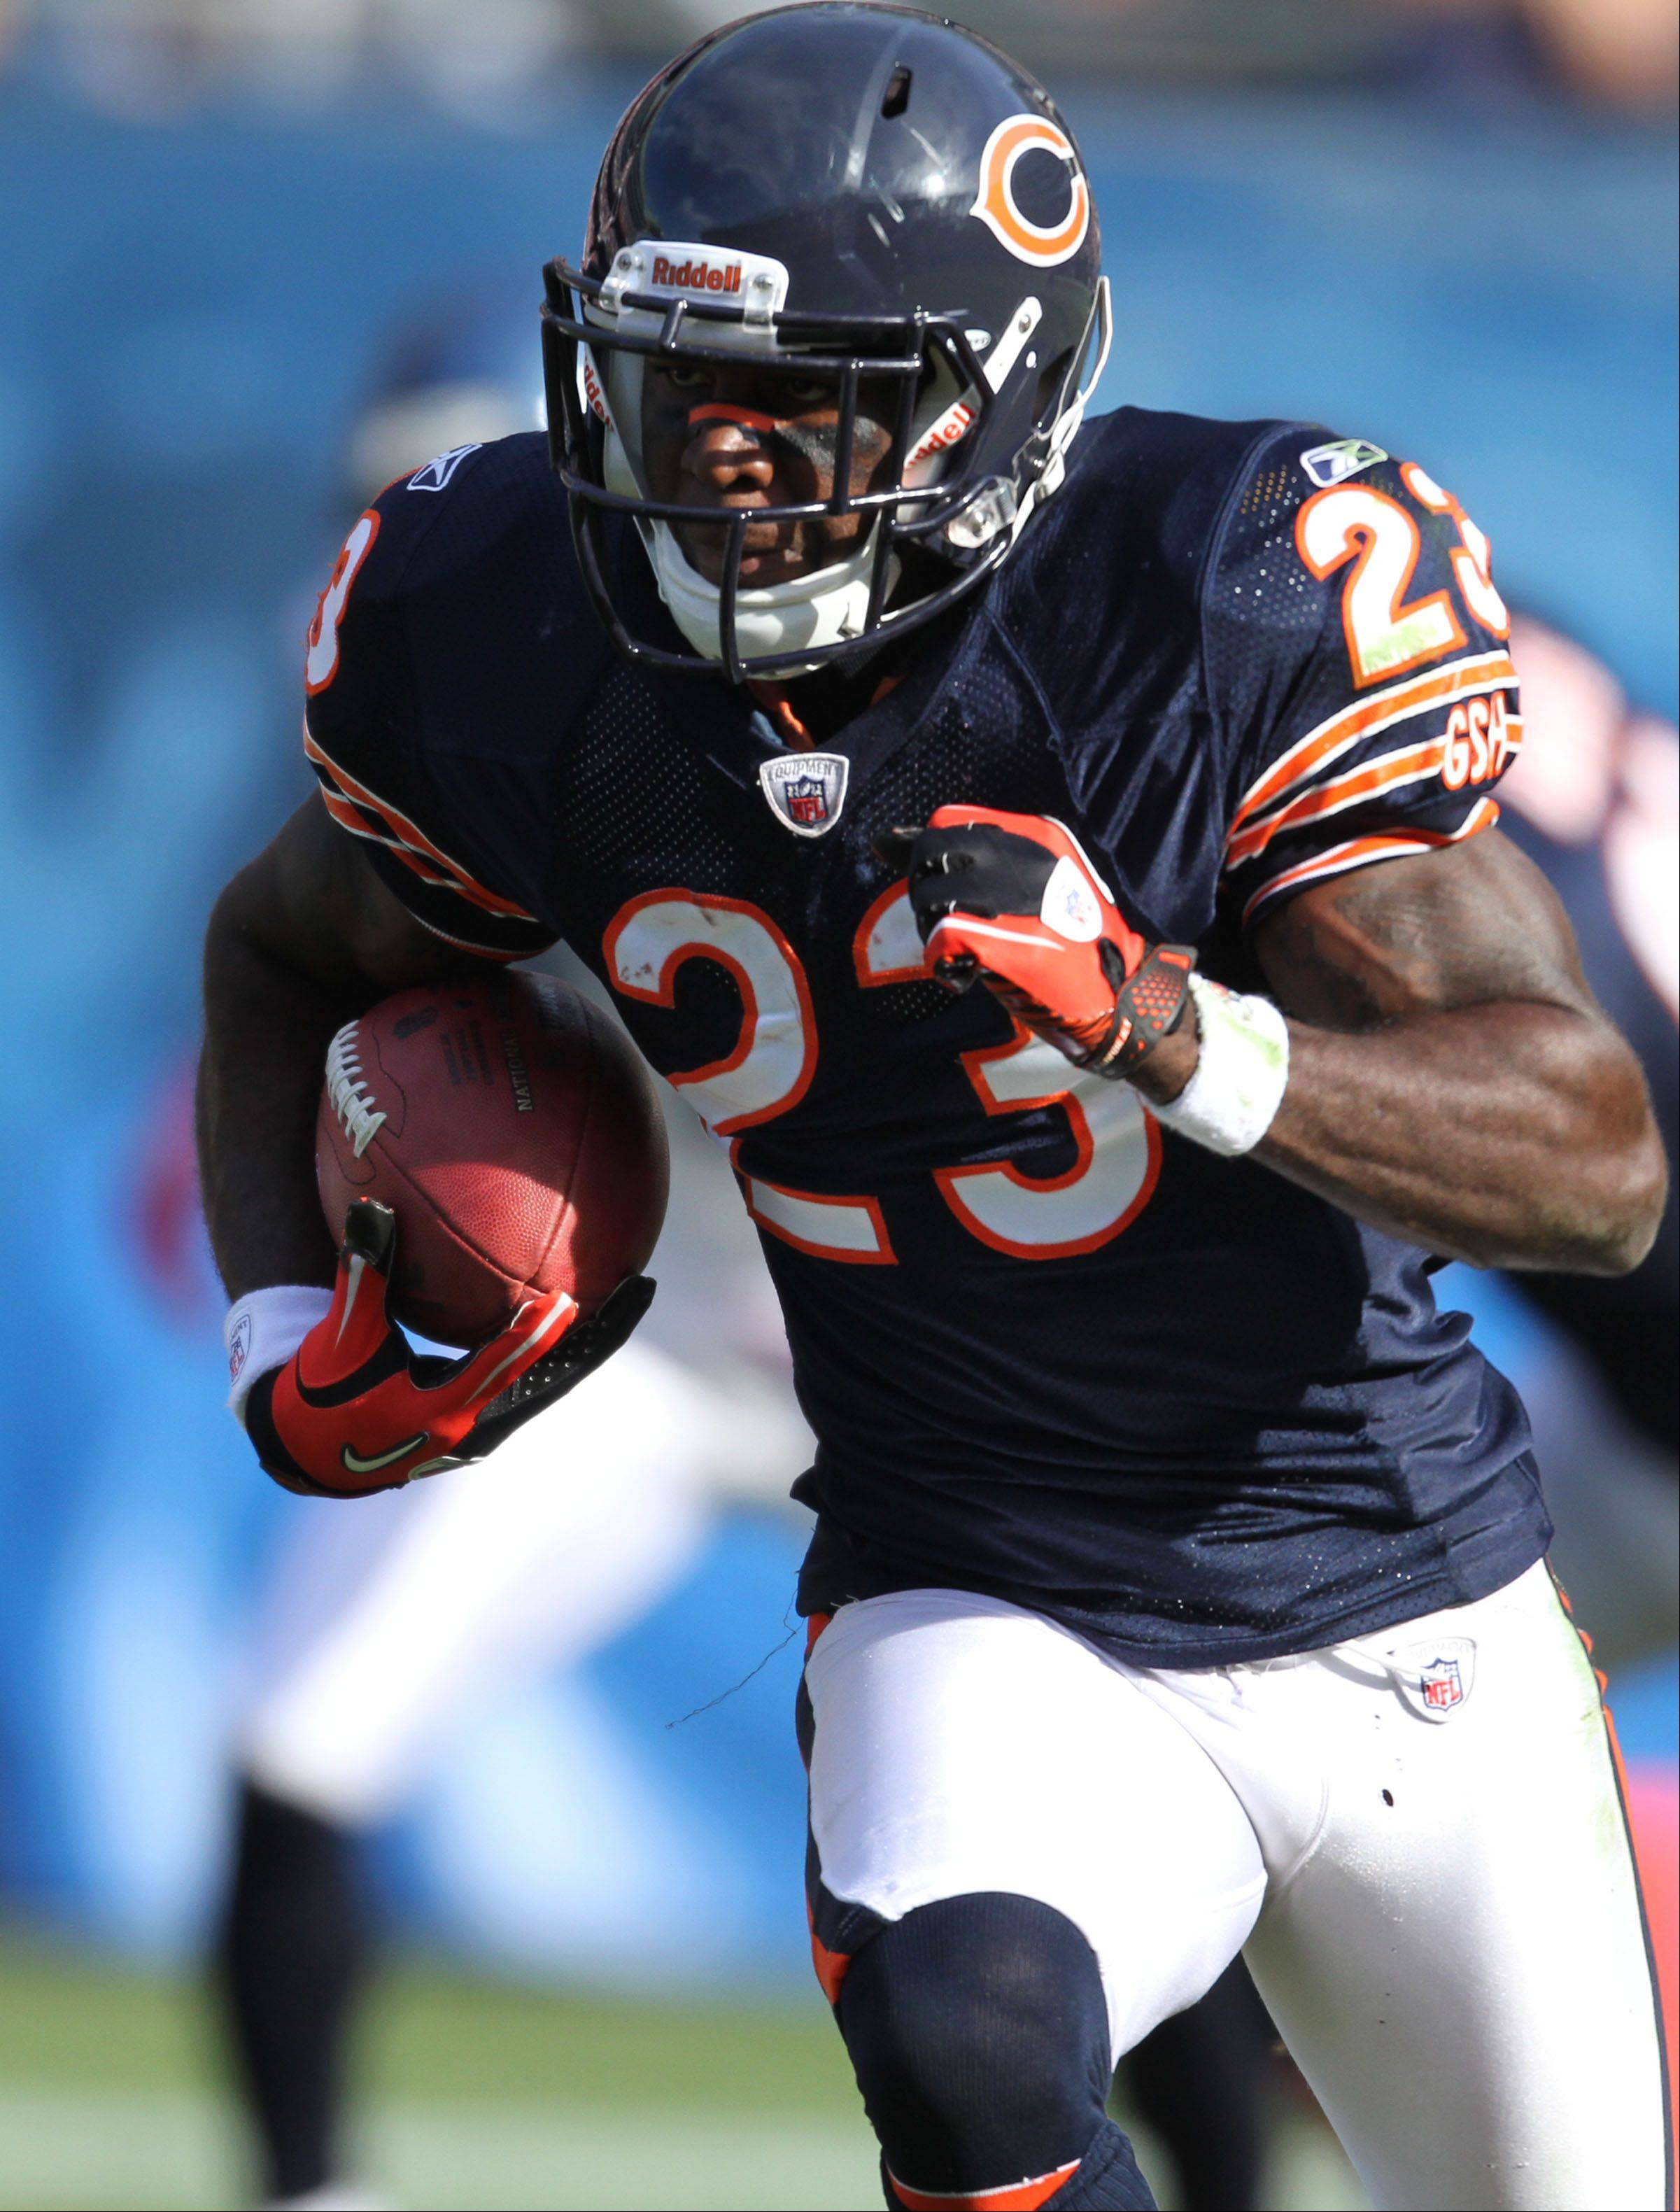 George LeClaire/gleclarie@dailyherald.com ¬ Chicago Bears' wide receiver Devin Hester returns a punt here for a touchdown late in the second half against Seattle Seahawks 23-20 at Soldier Field in Chicago on Sunday, October 17. ¬ ¬ ¬